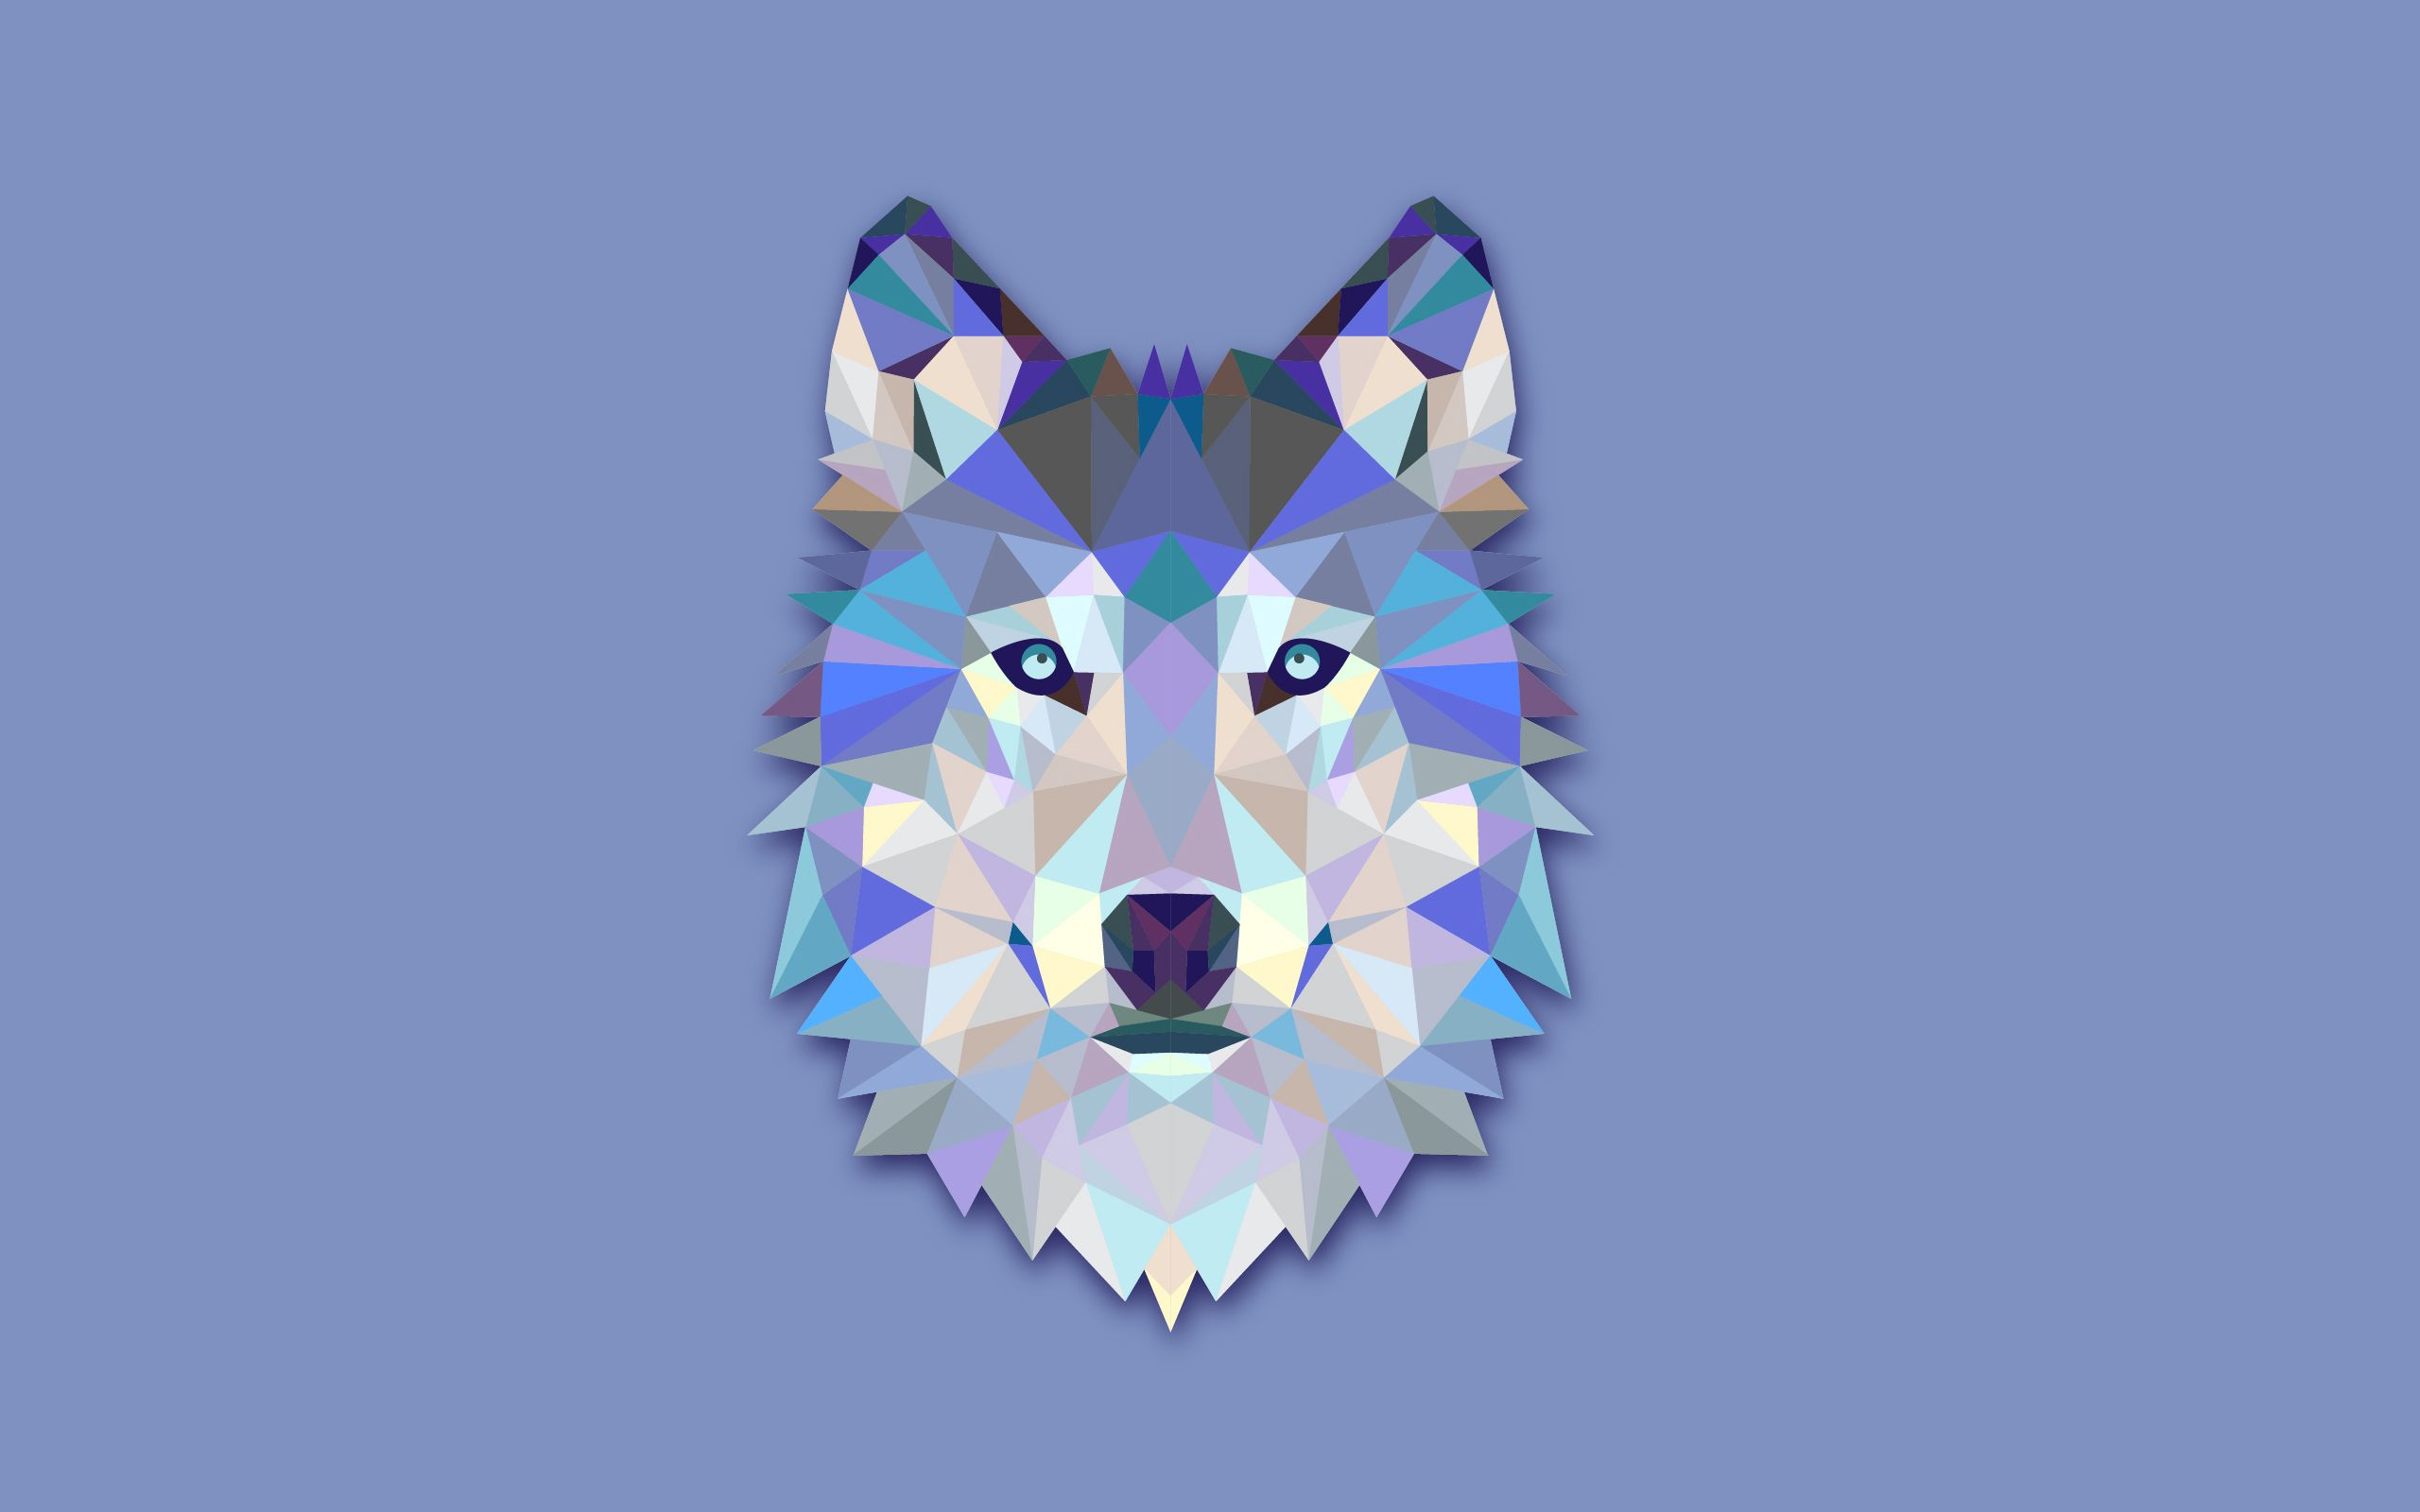 Geometric Animal Wallpaper 74 Images: The Wolf's Head Abstract Digital Art Is A HD Wallpaper